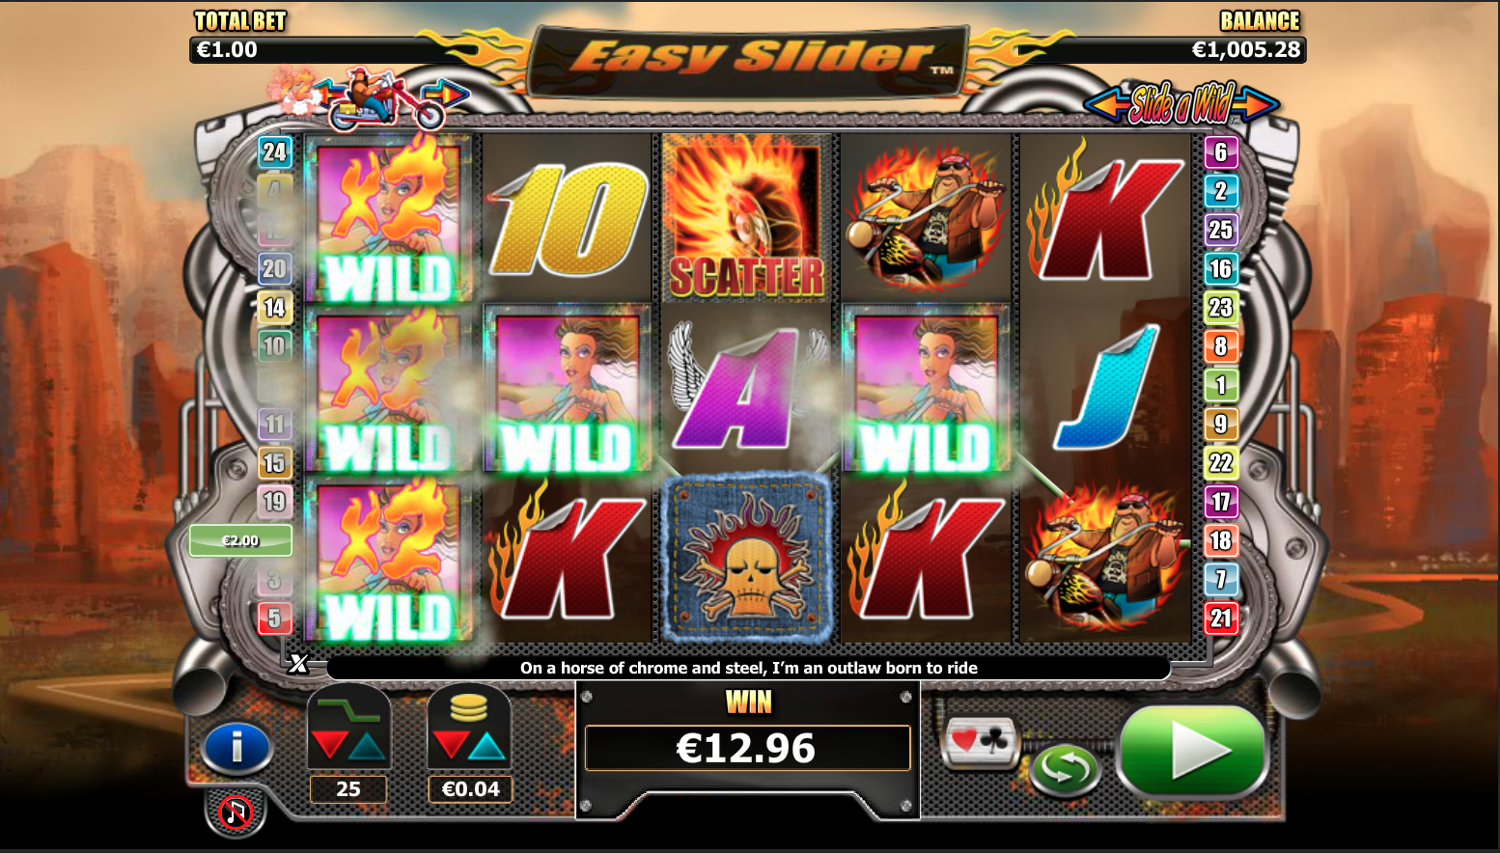 Easy Slider slot machine